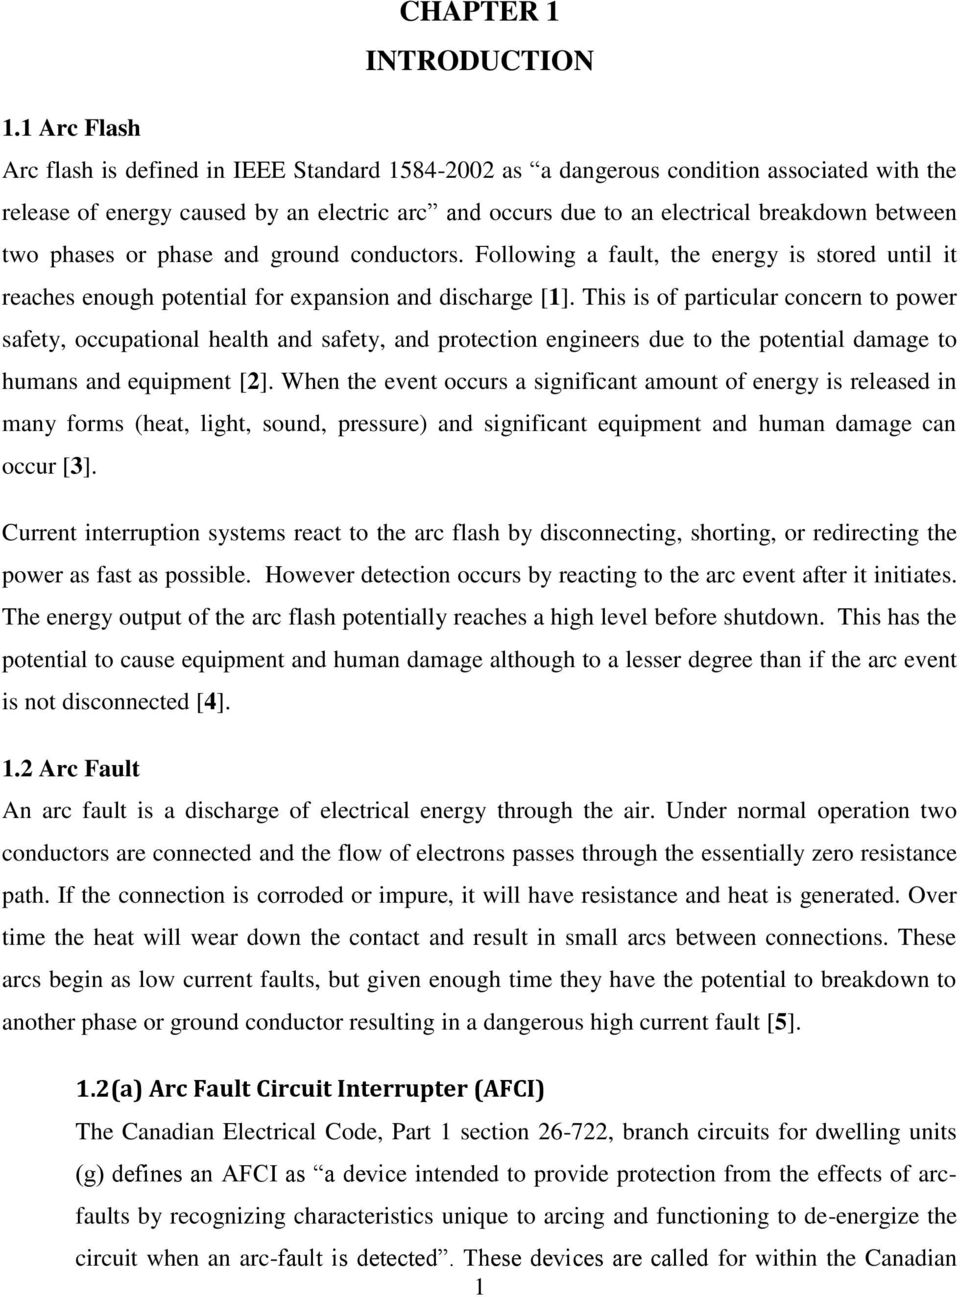 Arc Flash Detection Through Voltage Current Signatures Pdf Thorough And Provides A Great Introduction To Electric Circuits Two Phases Or Phase Ground Conductors Following Fault The Energy Is Stored